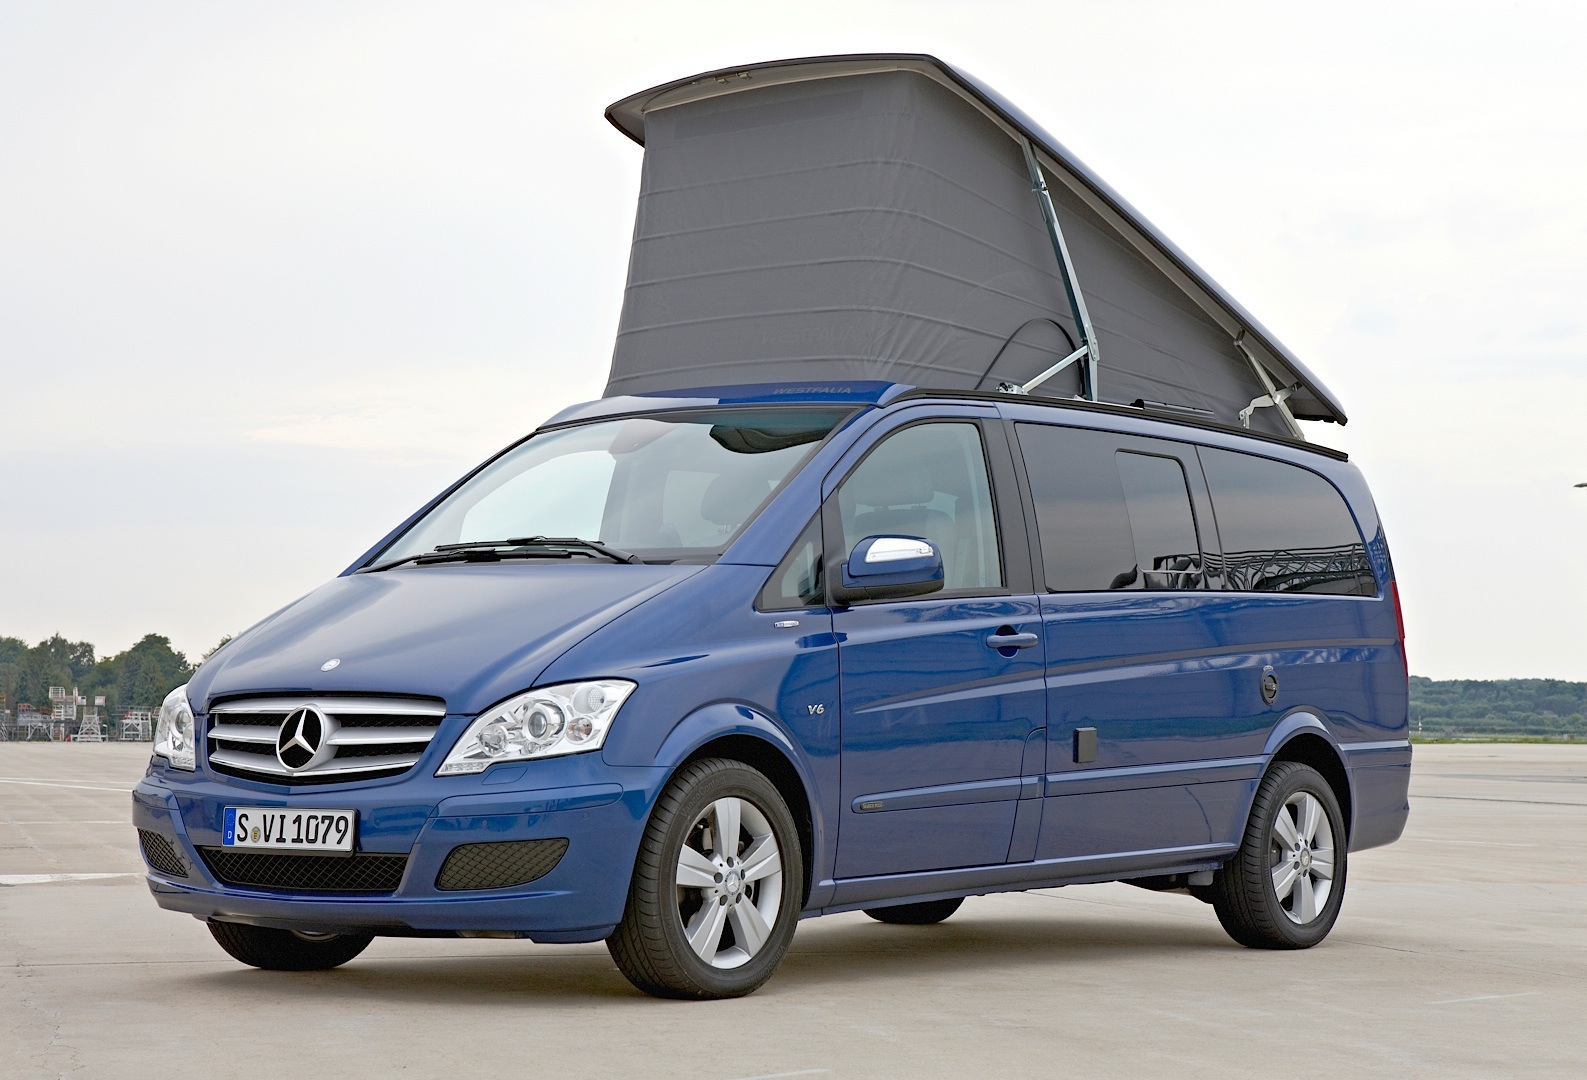 Mercedes Benz Takes Over The 2013 Caravan Salon Autoevolution